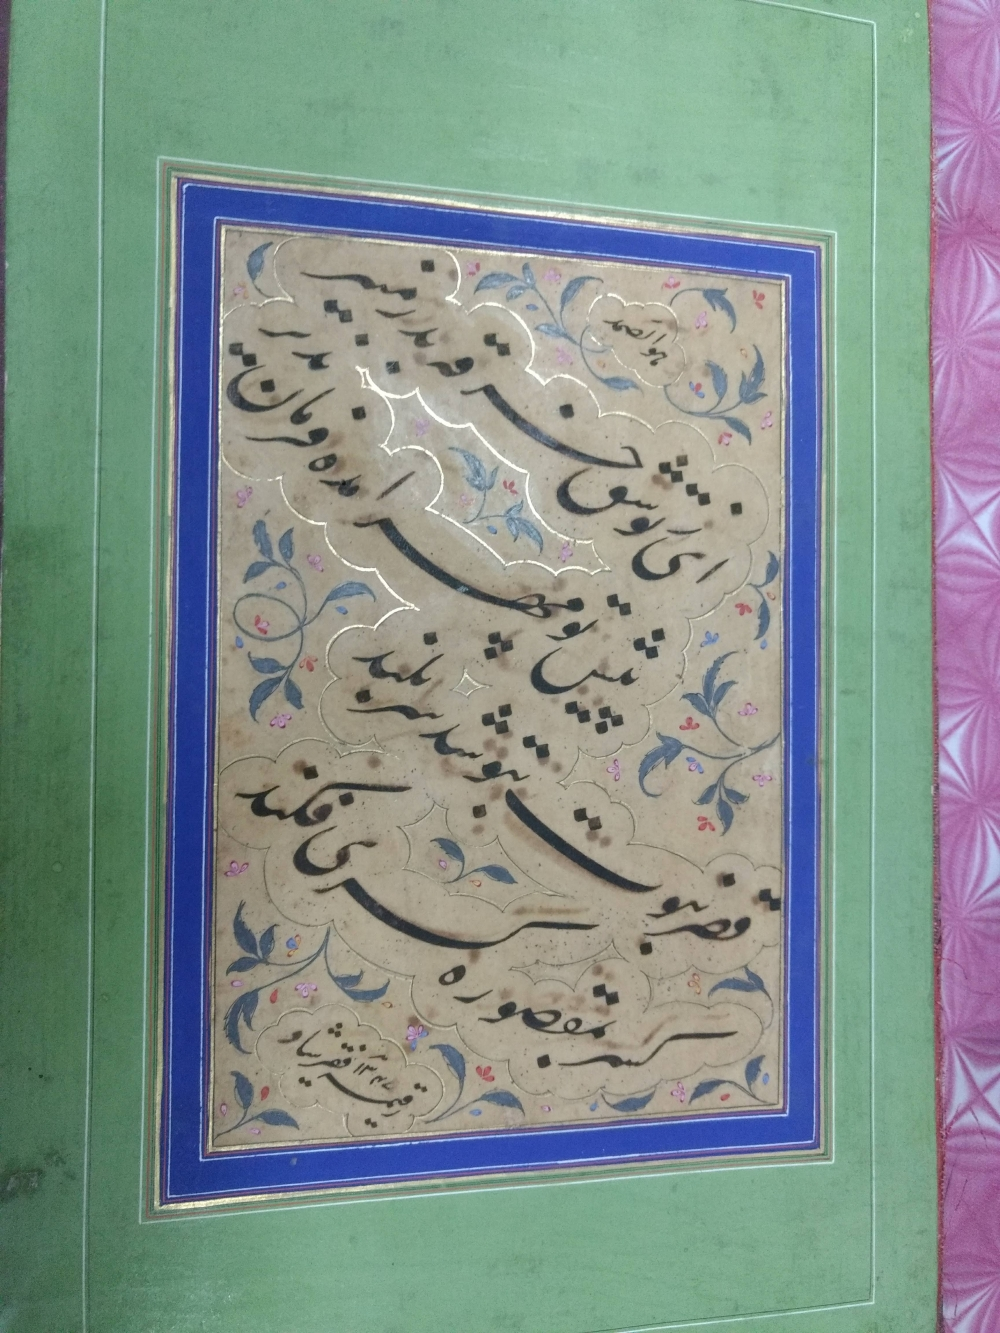 Fig. 8:Persian couplet in praise of the Prophet framed at the BGS Library. The poet signs 'Faqir Shad', the pen-name of Maharaja Kishen Pershad (d. 1940), Prime Minister of Hyderabad between 1902- 1912, and from 1925- 1937. The date is 1347 Fasli, or 1937/38 CE.